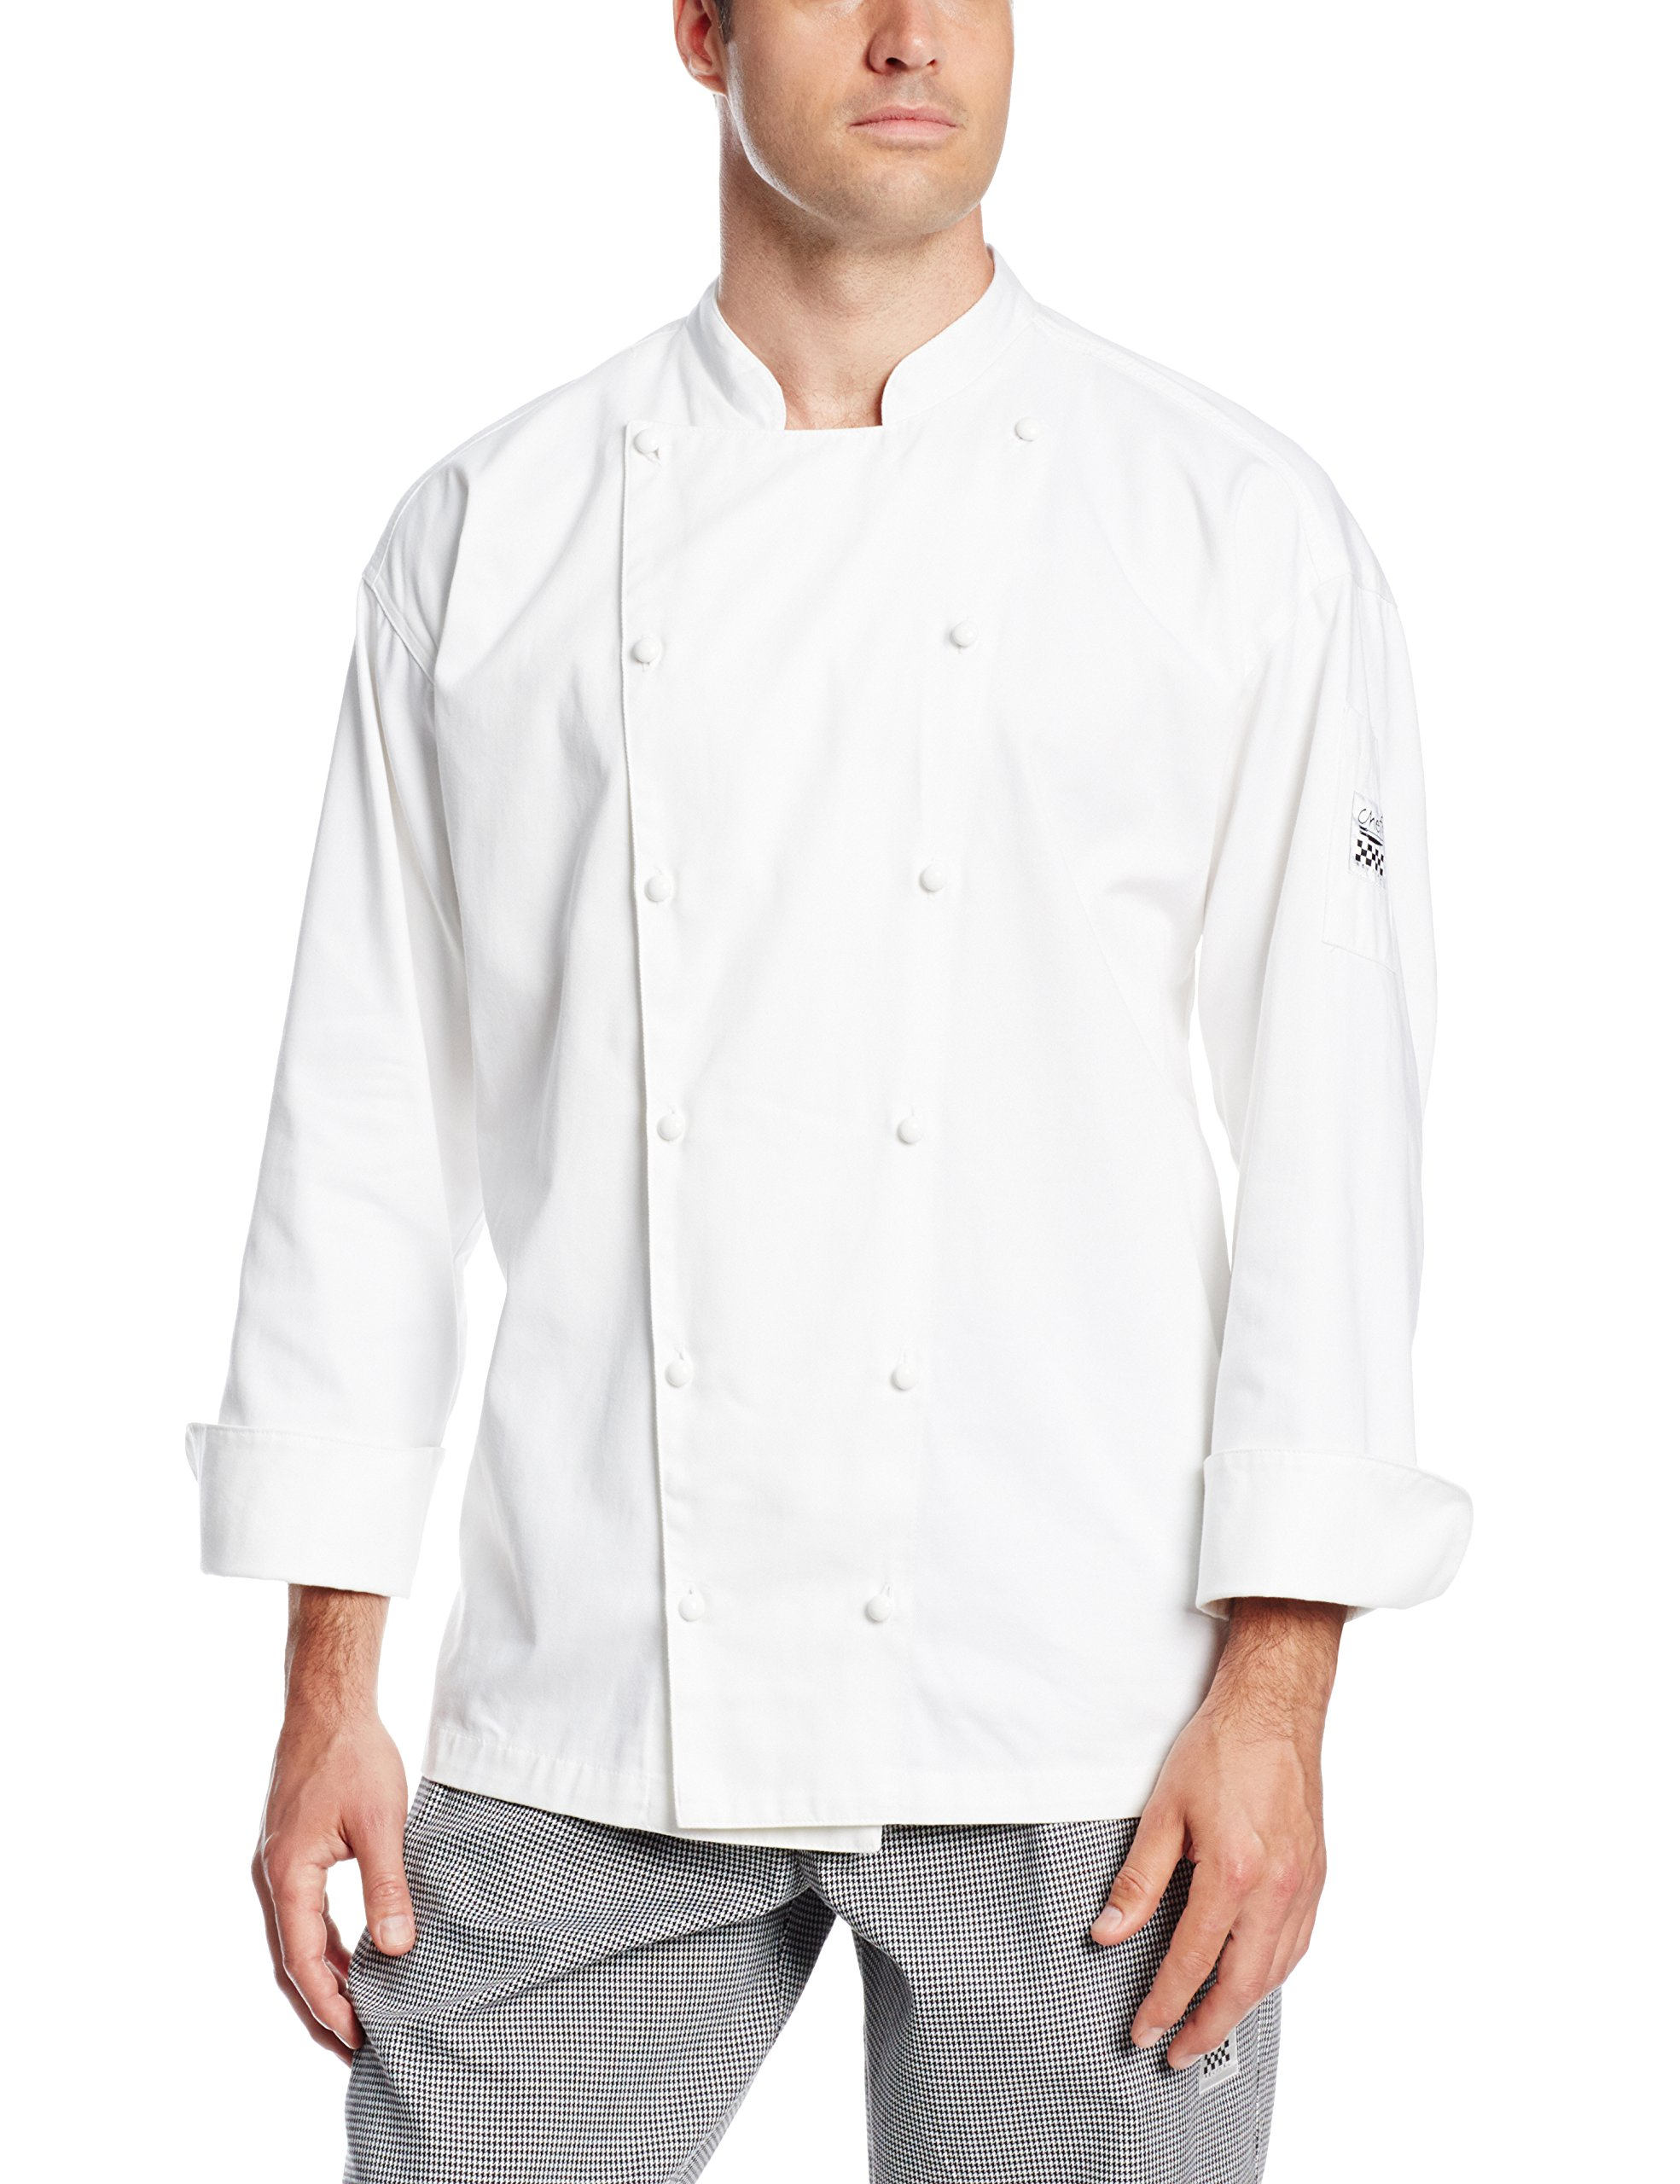 San Jamar J022 Cotton Classic Long Sleeve Chef Jacket with Push Through Button, 4X-Large, White